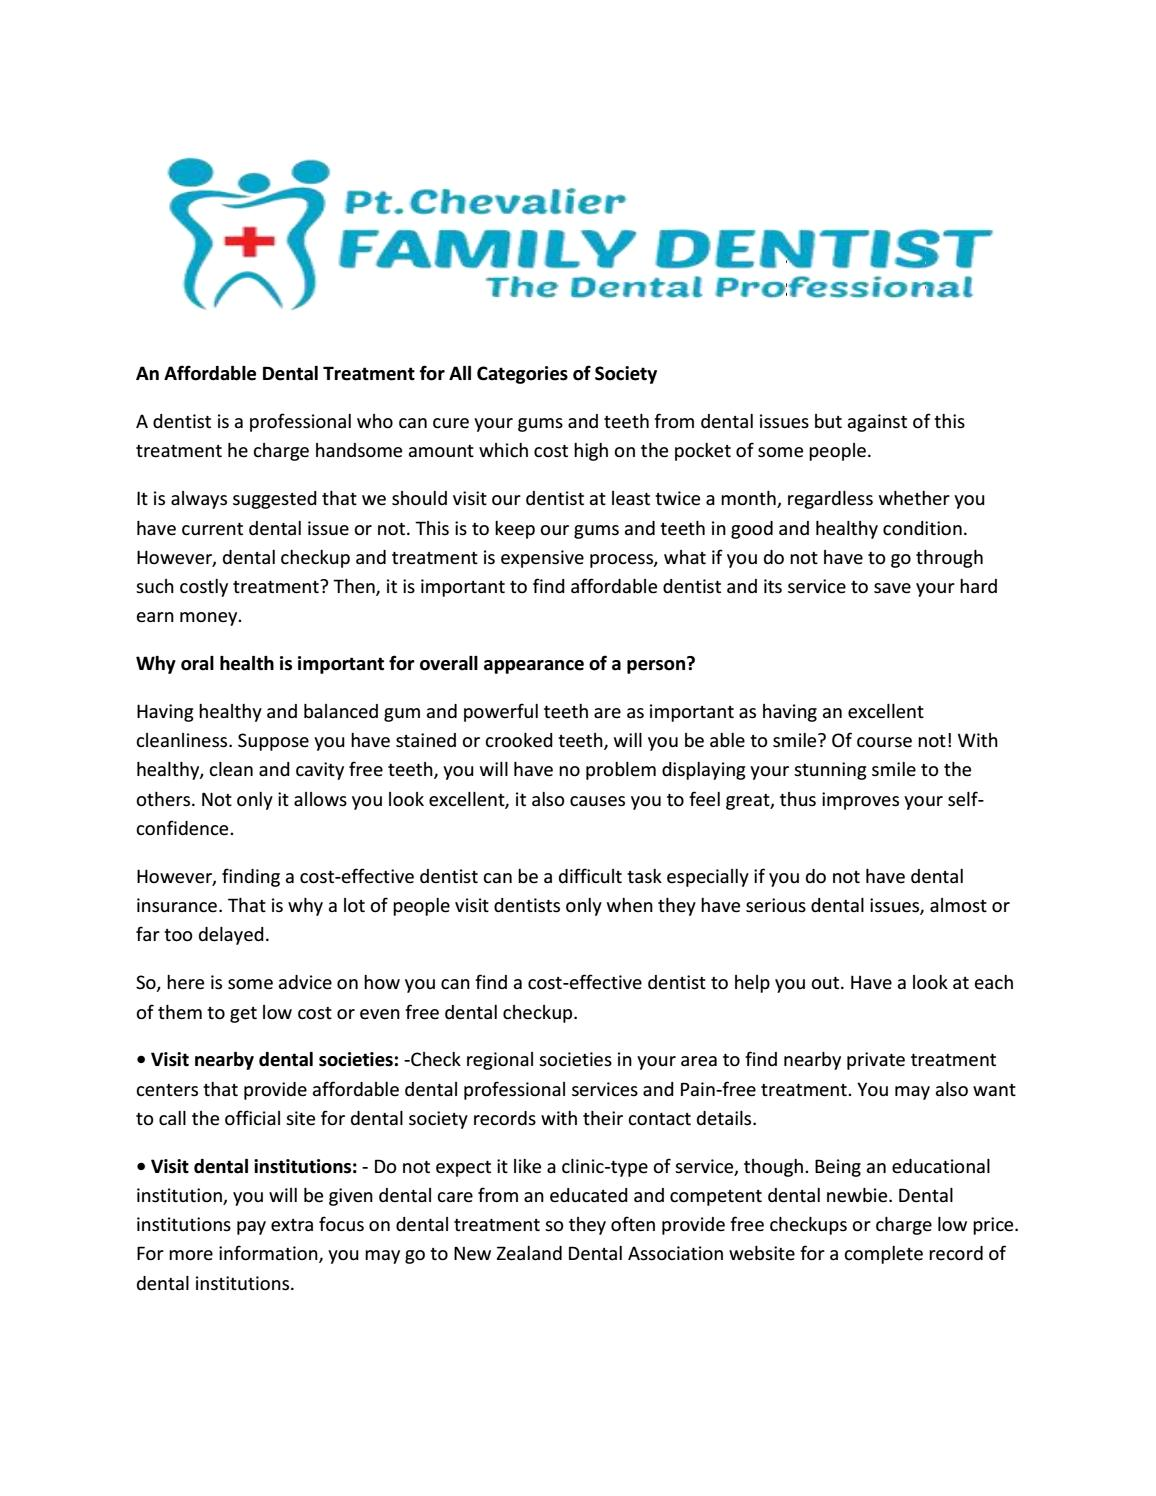 Pain Free Dental Treatment in Auckland New Zealand by